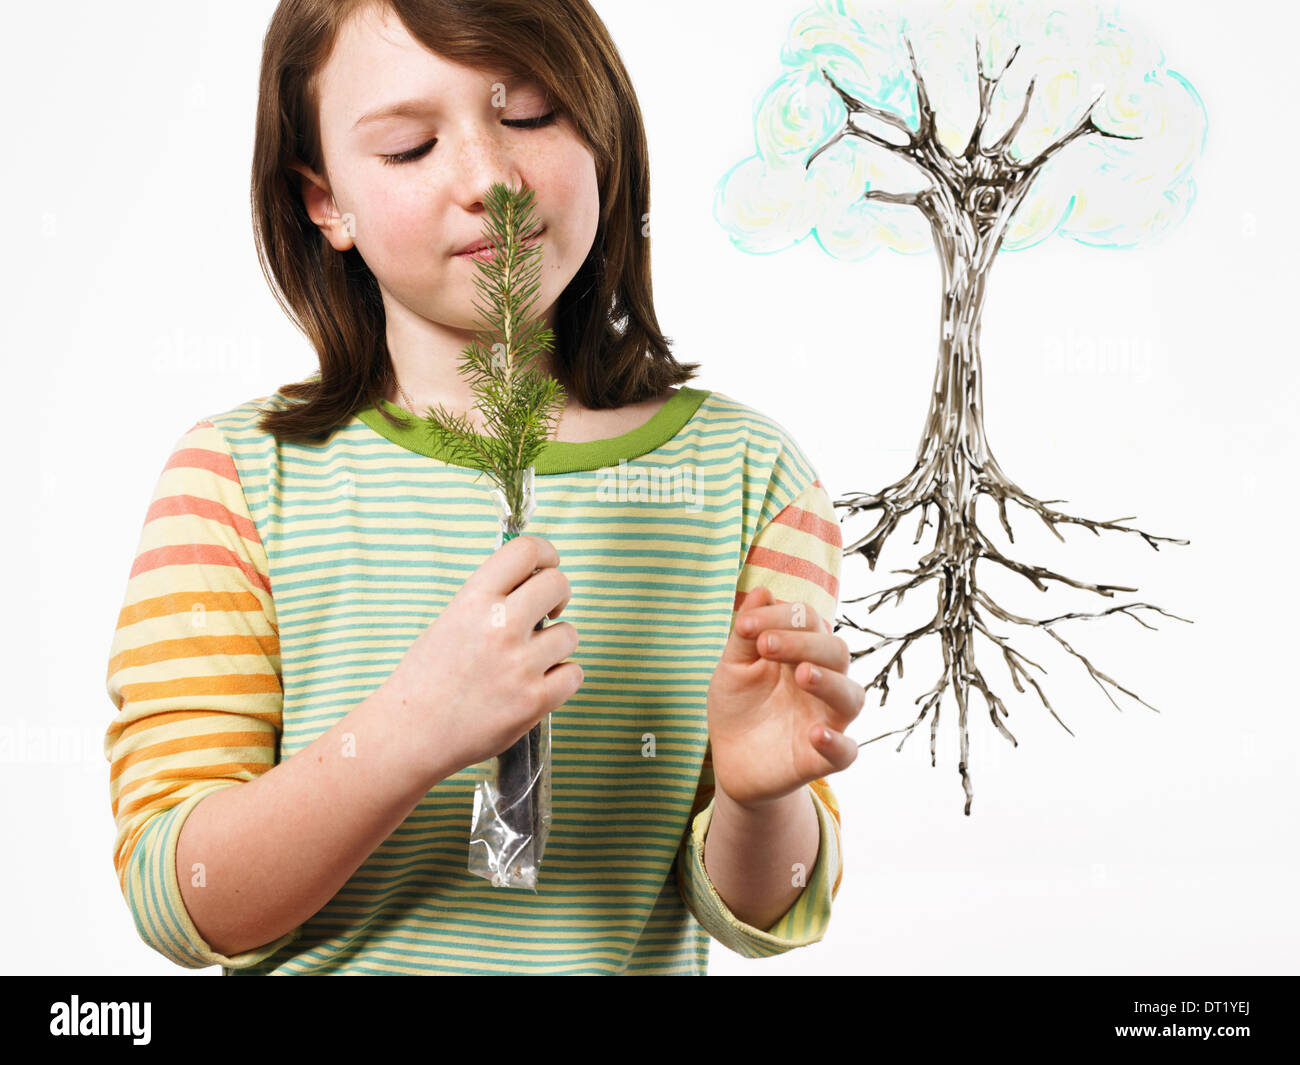 A young girl holding a small evergreen seedling to her nose and smelling it plant with roots on a clear see-through surface - Stock Image